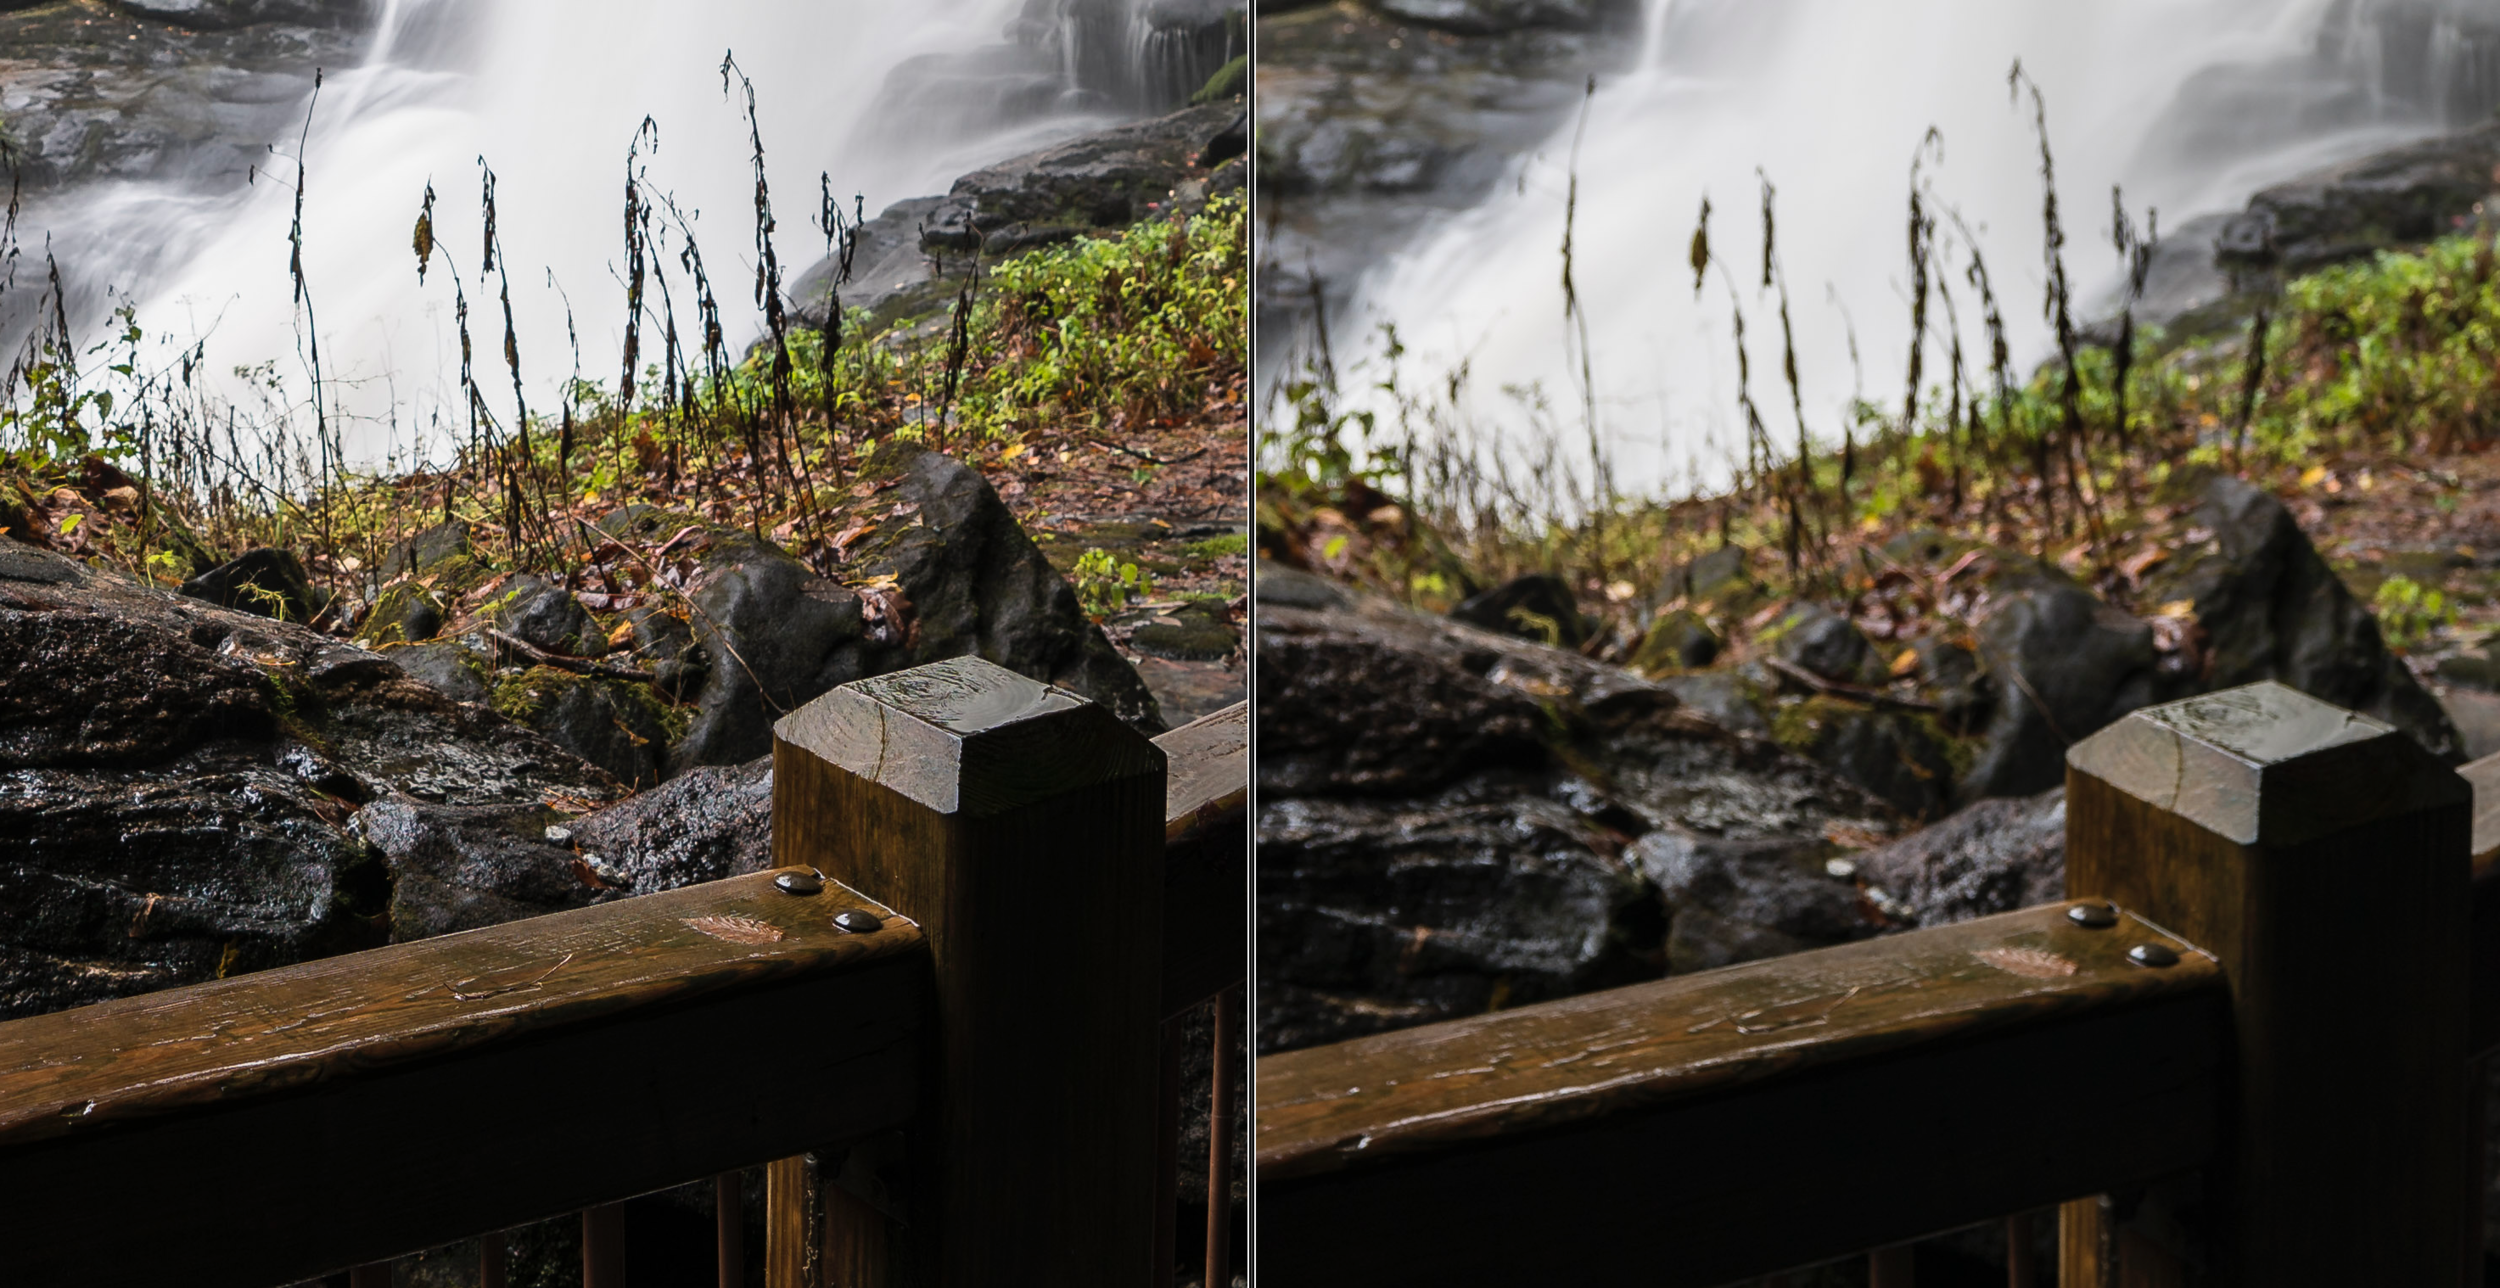 f/4, 100% crop, Sony 16-35 GM left, Sony 12-24 G right